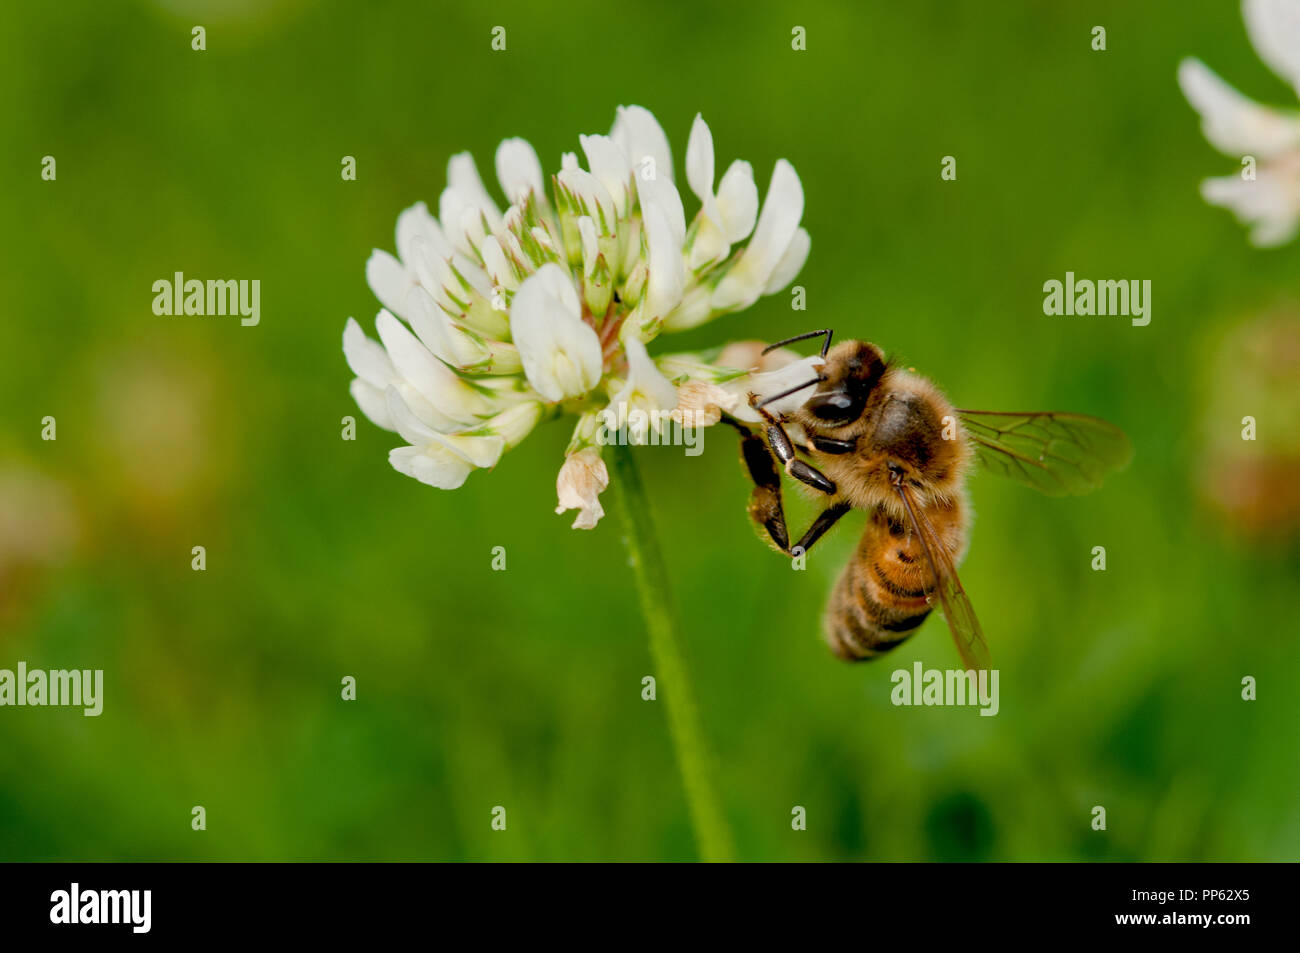 Honeybee (Apis mellifera) feeding on clover (Trifolium sp.) on a lawn in Boise, Idaho, USA - Stock Image